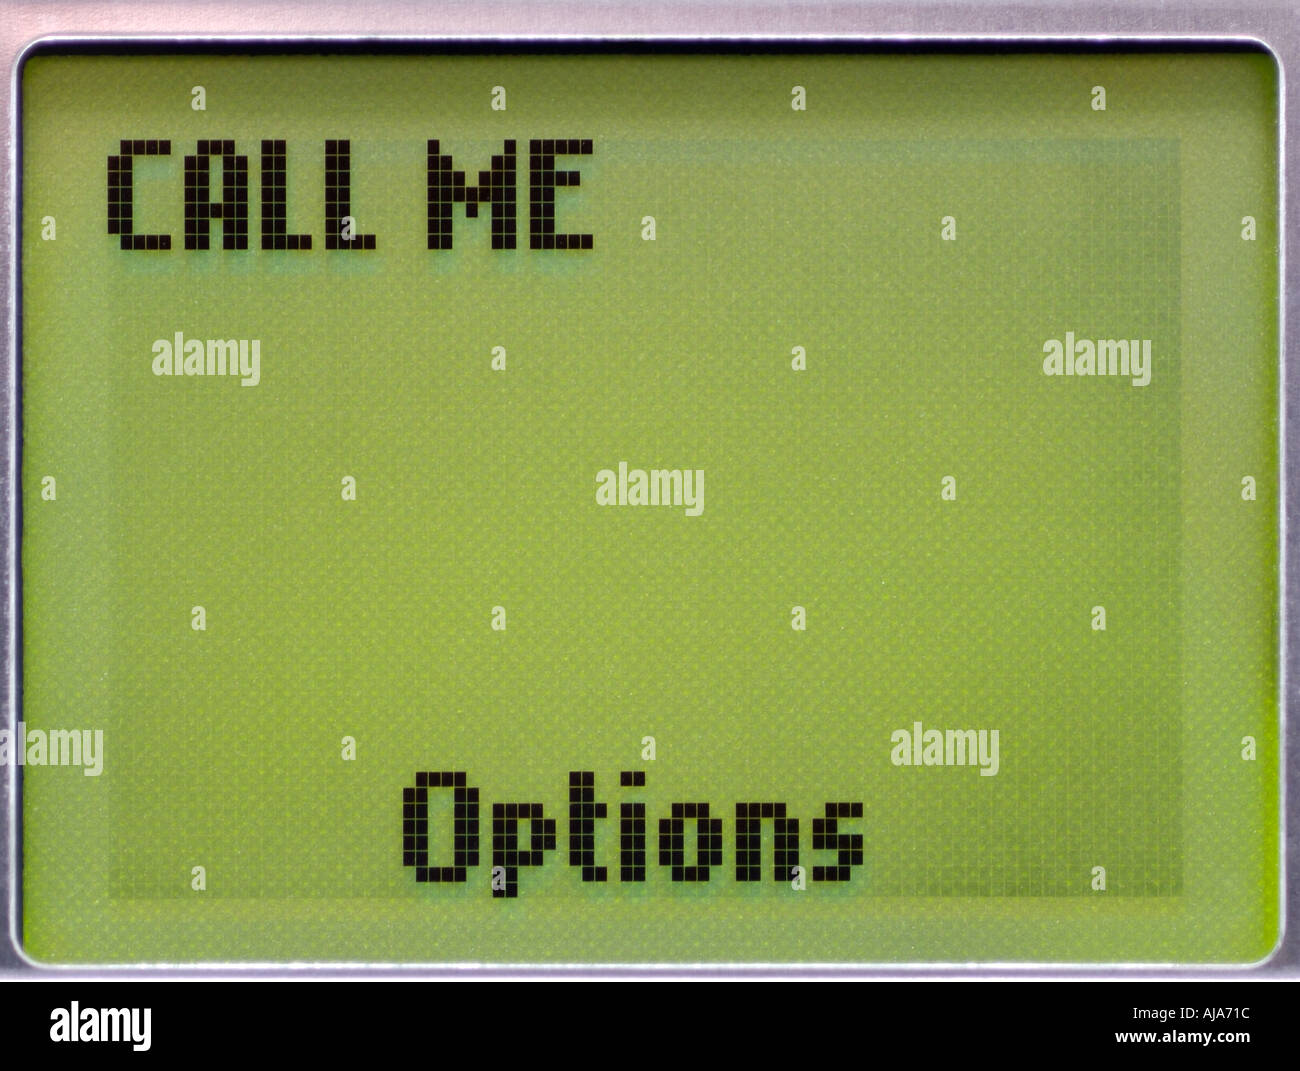 Cell Phone Display with Call Me Message, Close Up. - Stock Image